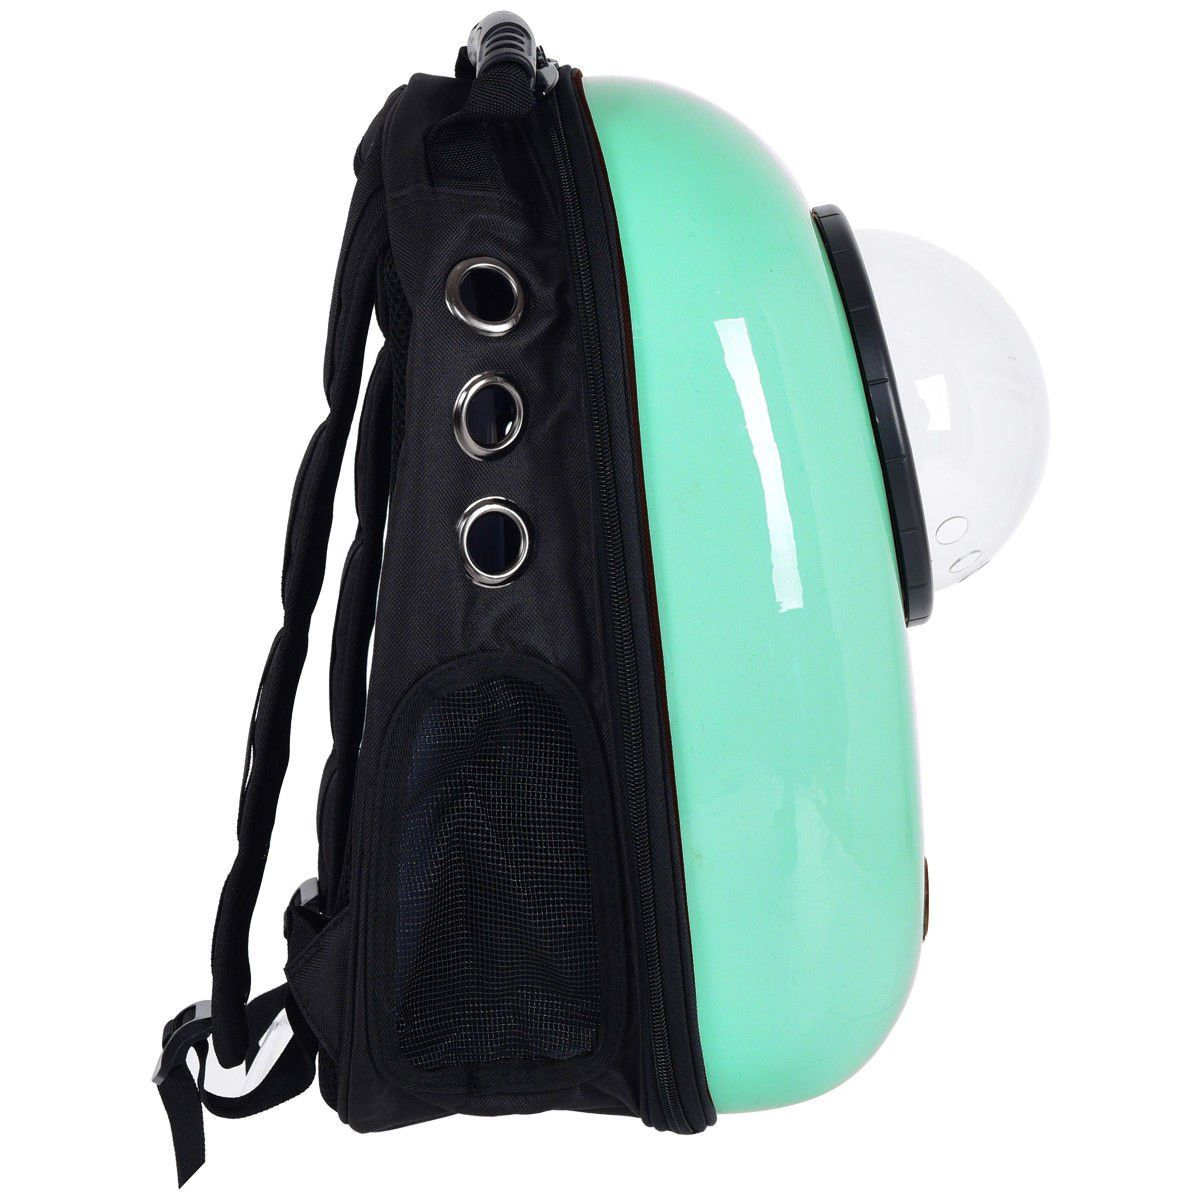 abd234545485 Giantex Astronaut Pet Cat Dog Puppy Carrier Travel Bag Space Capsule  Backpack Breathable Light Green